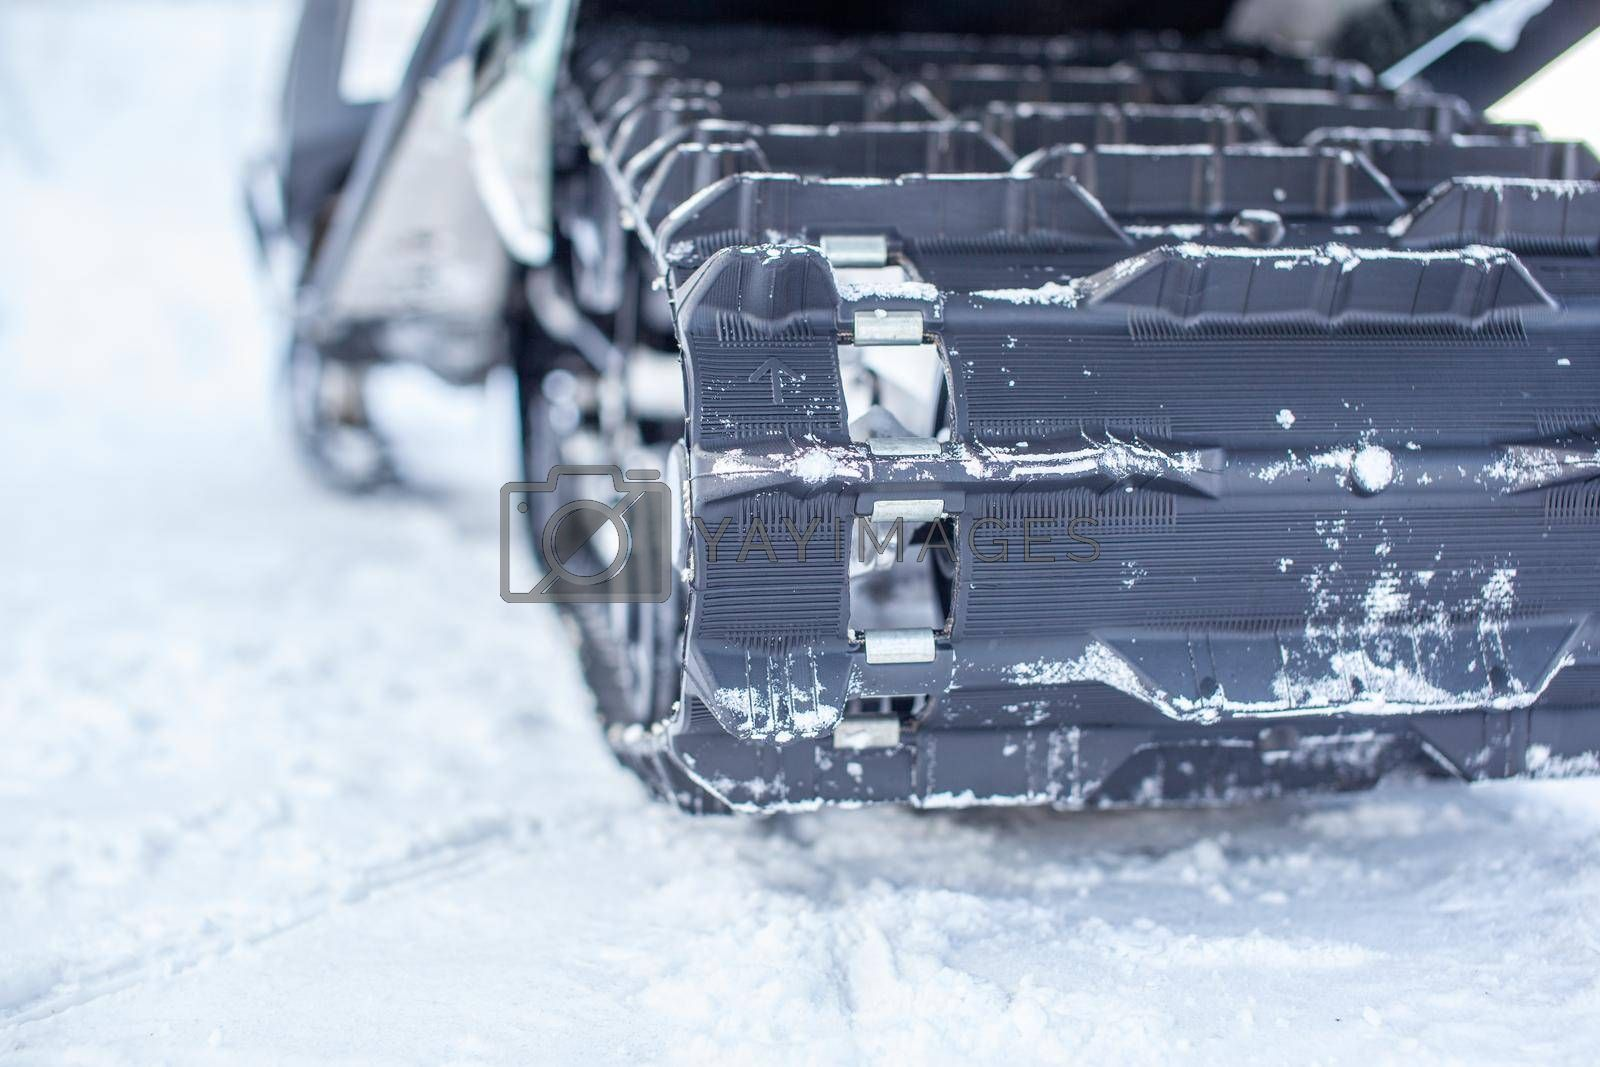 The back of the snowmobile in winter. Riding in the snow on a snowmobile. Rear suspension of a snowmobile